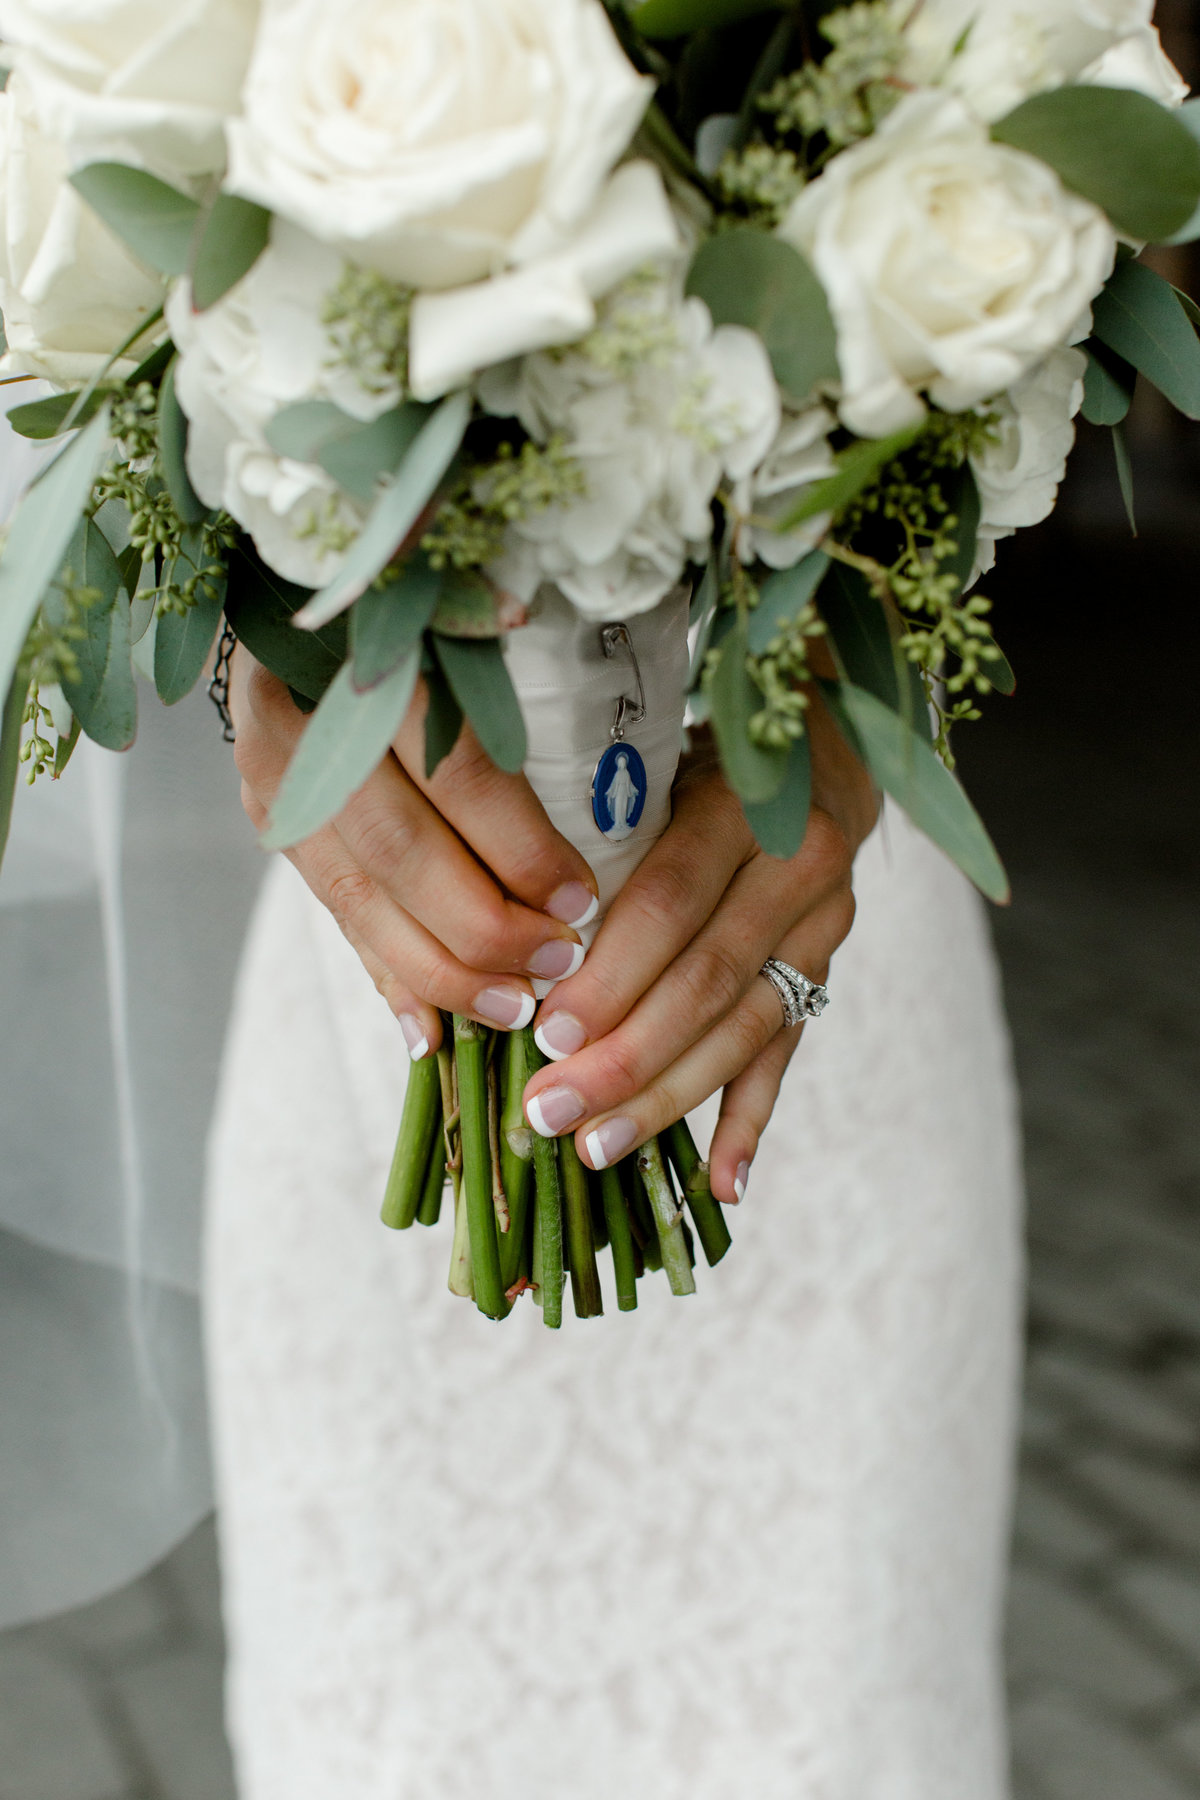 Catholic image of Mary wrapped around bouquet - unique ways to incorporate faith into wedding day